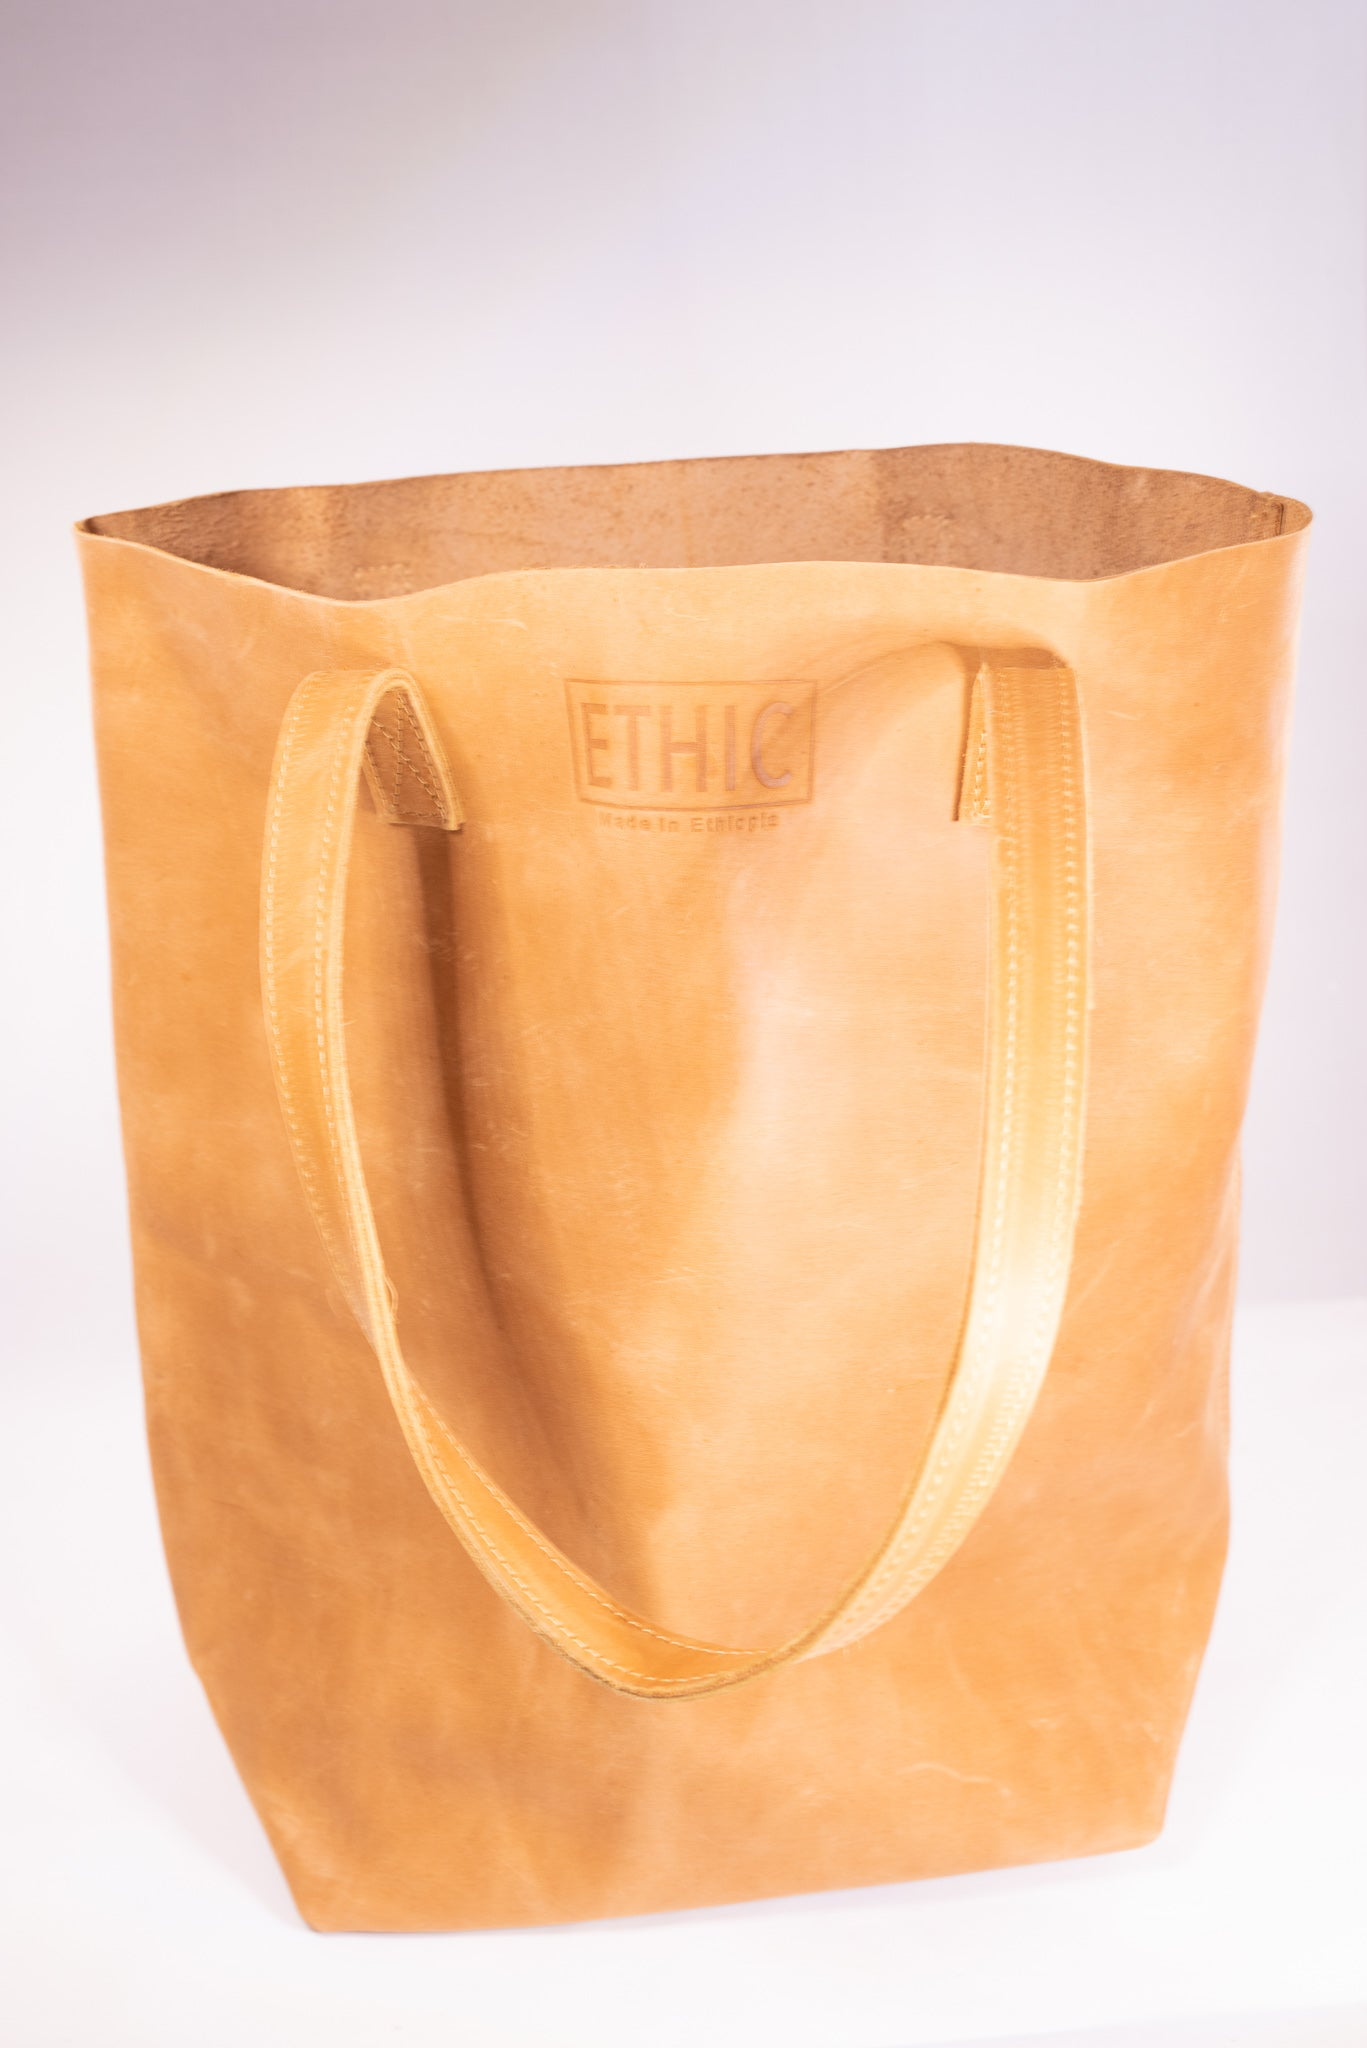 Ethic Leather Classic Tote